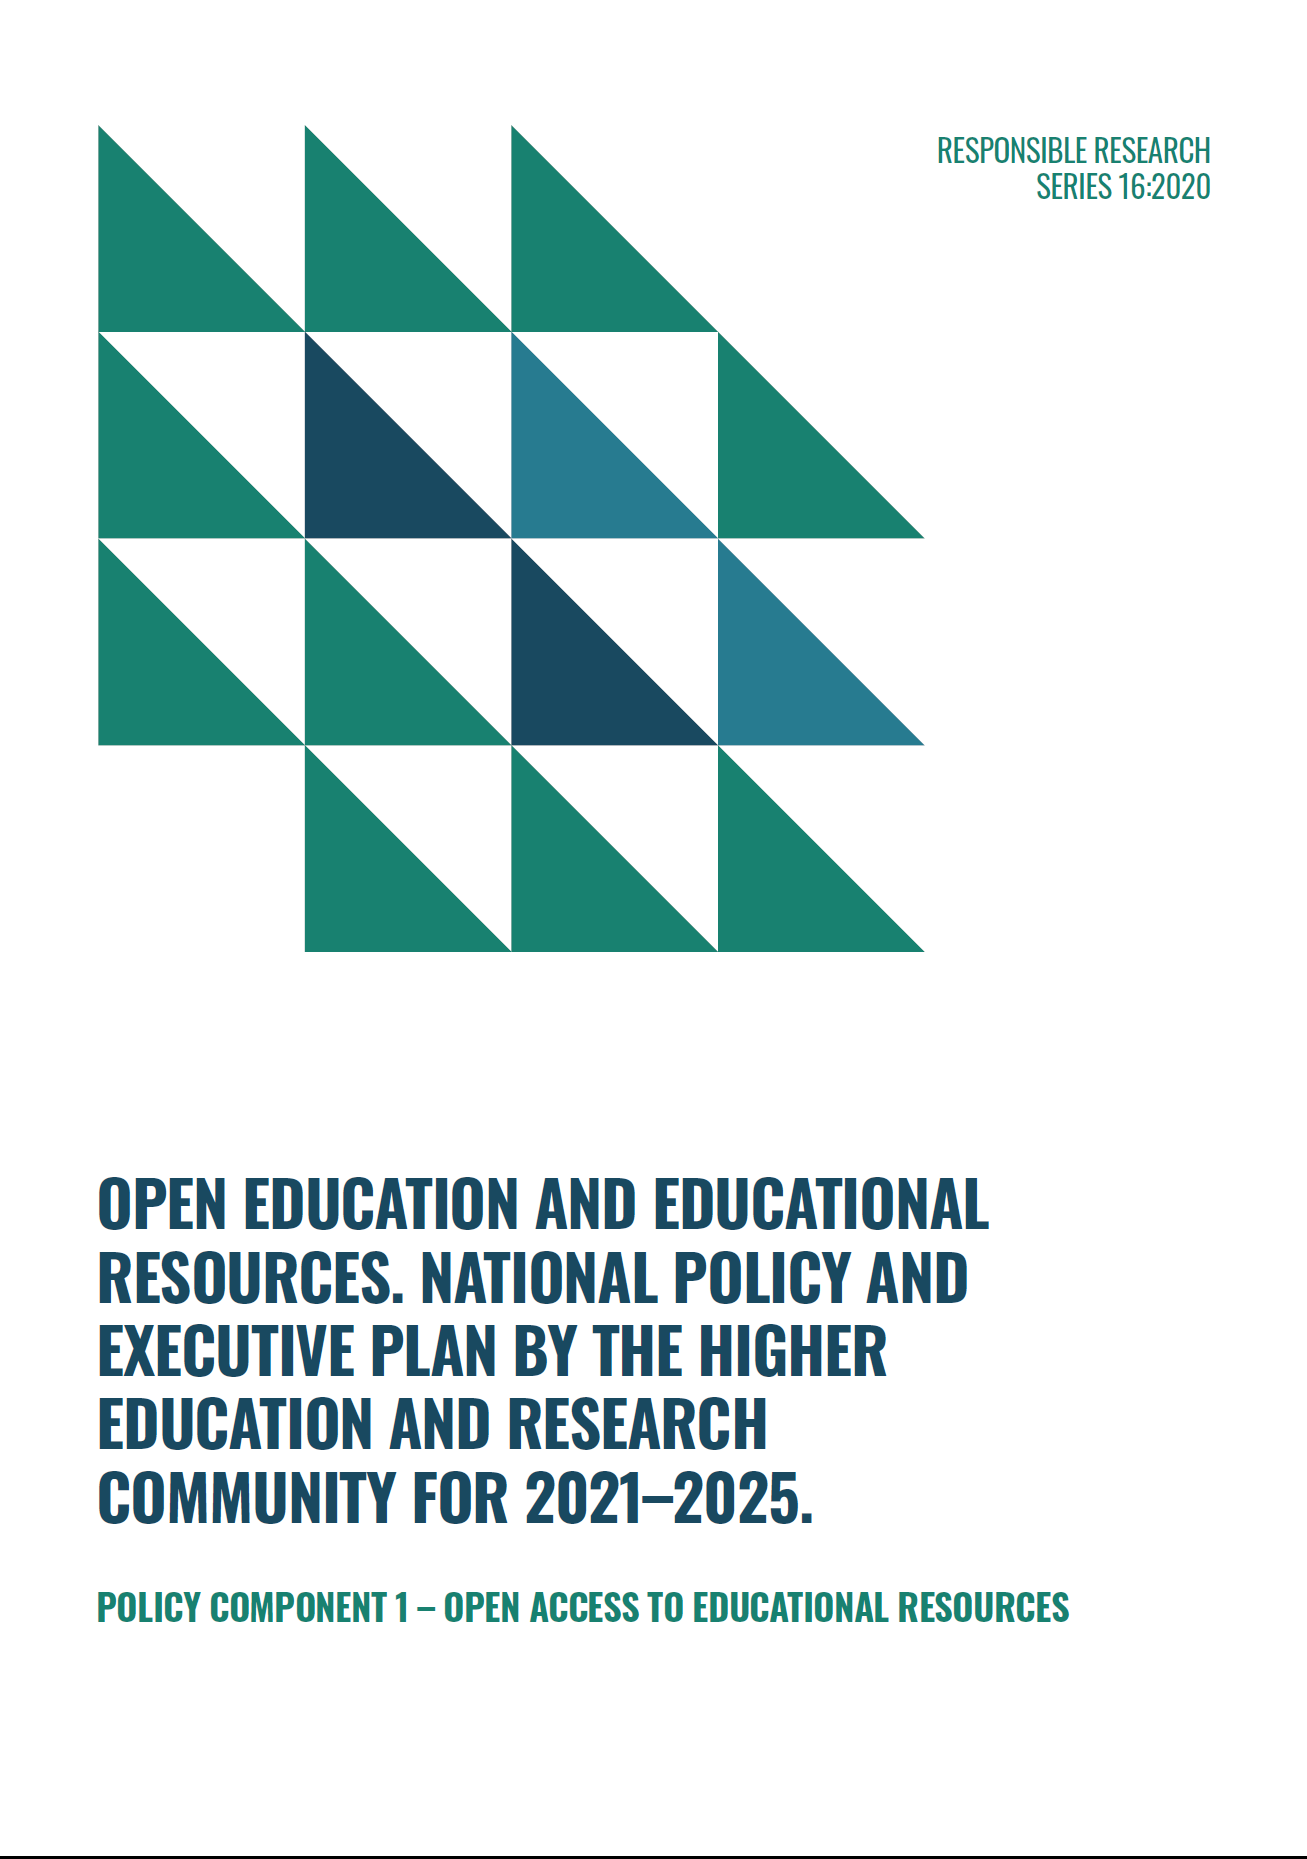 Front page of the policy